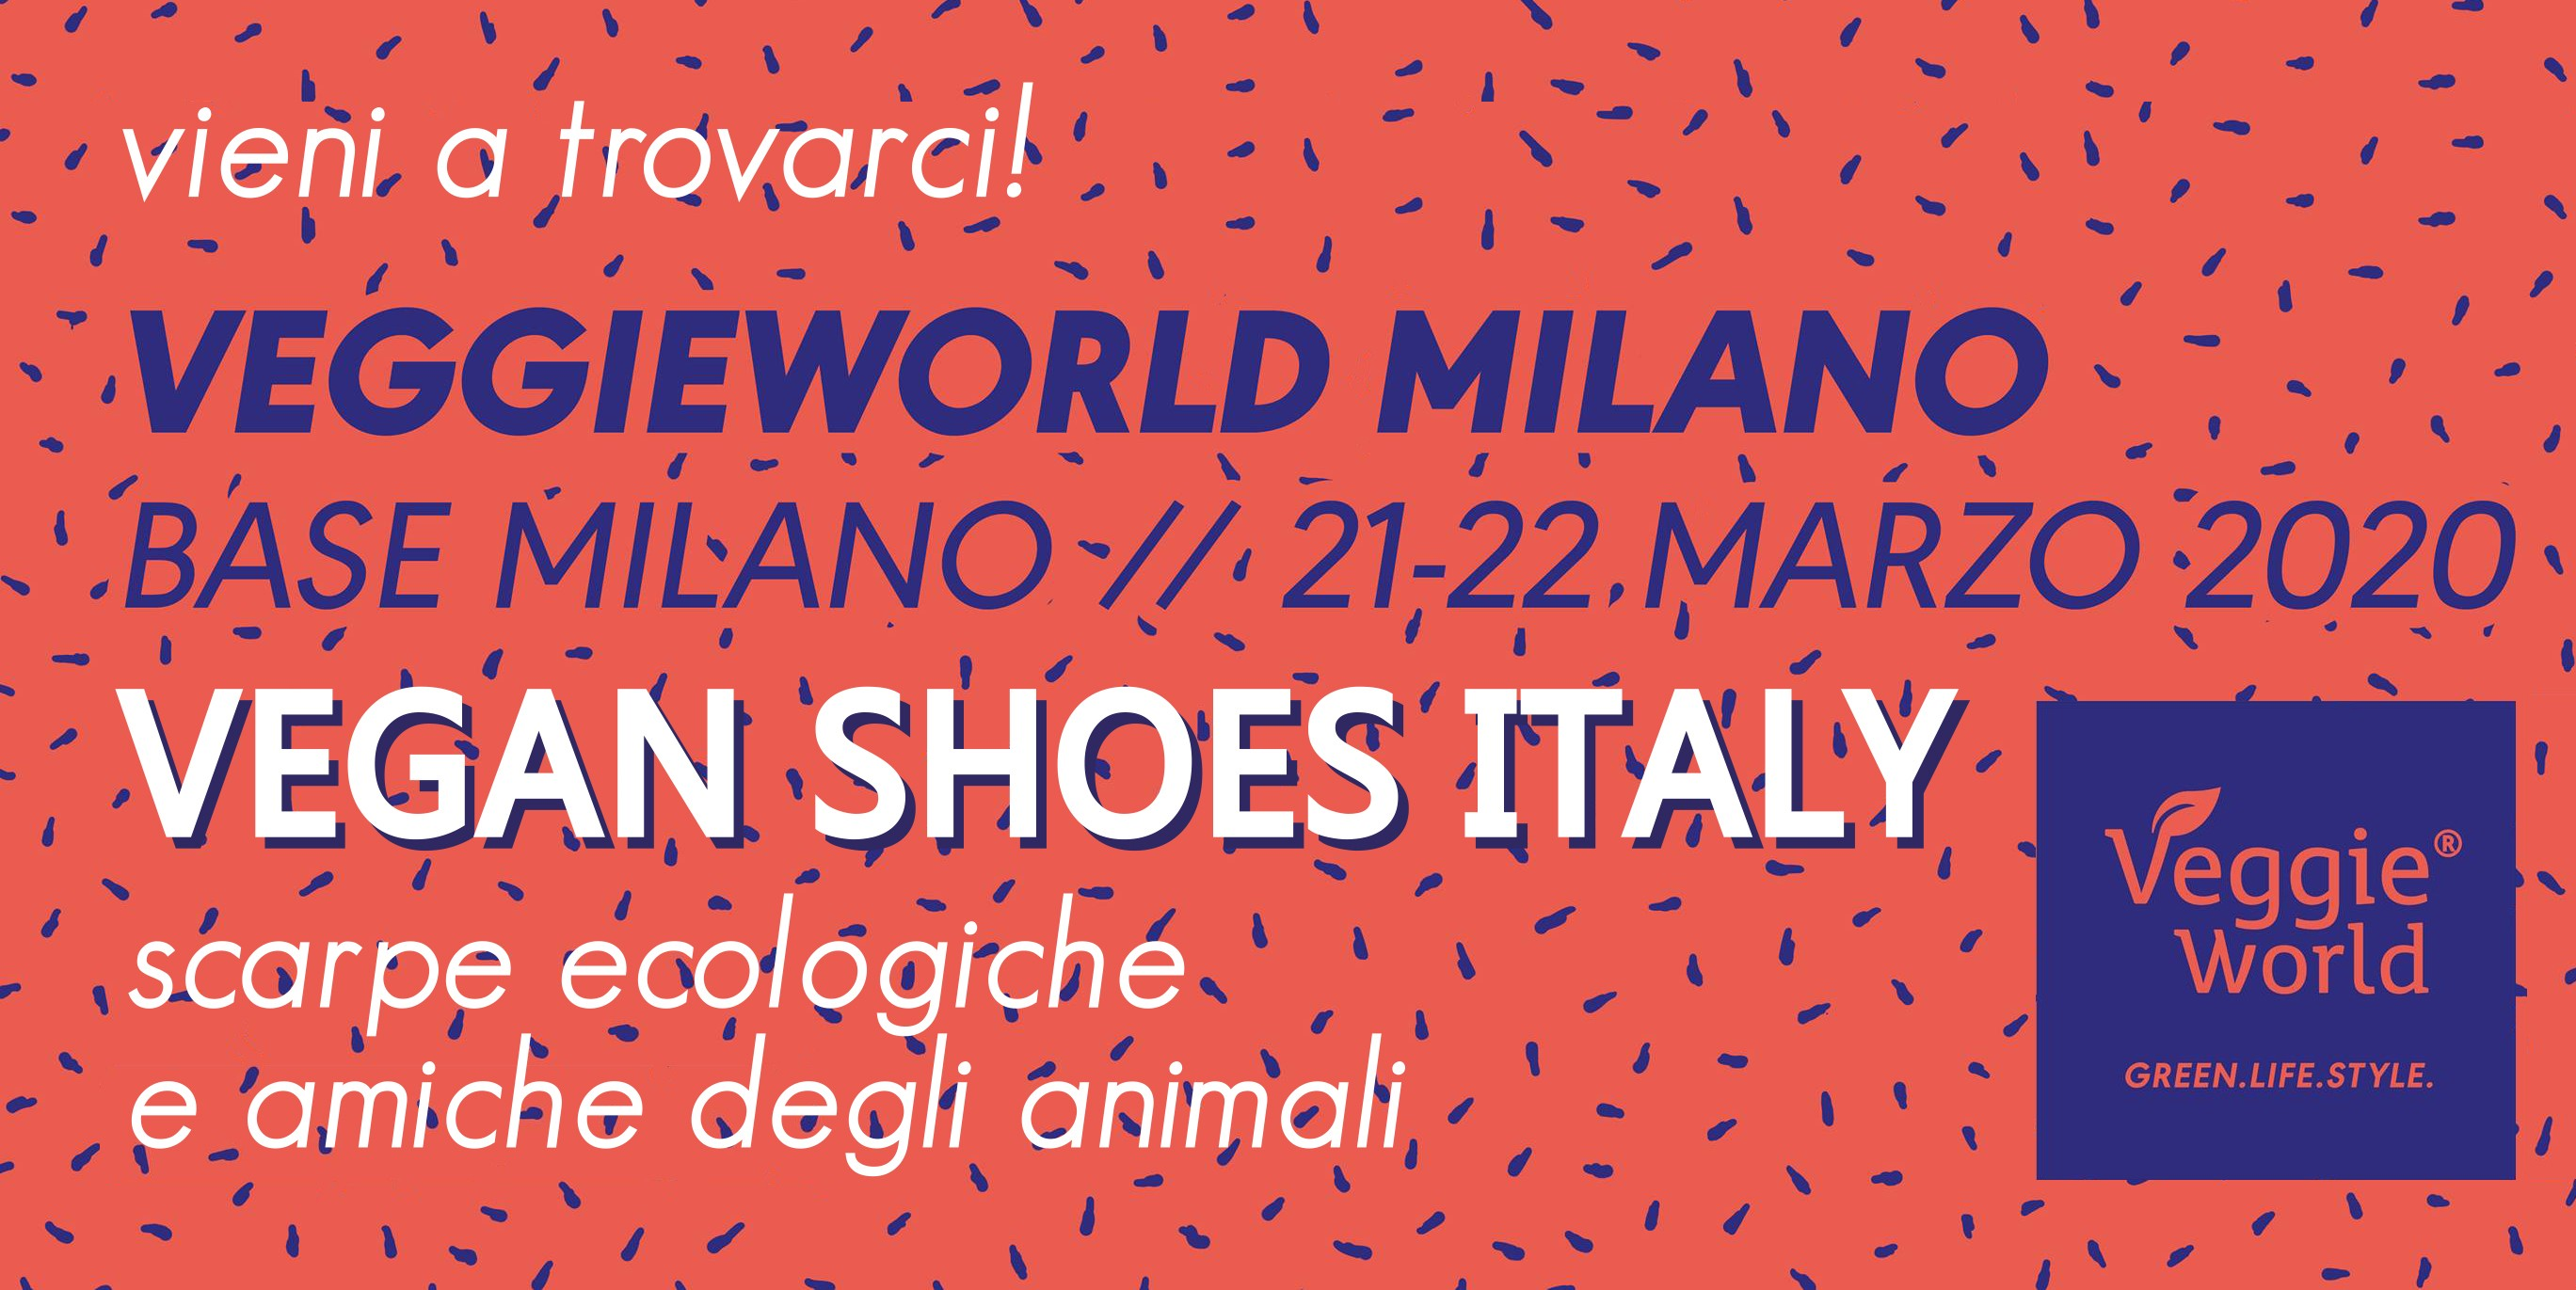 vegan shoes italy al veggie world 2020 milano